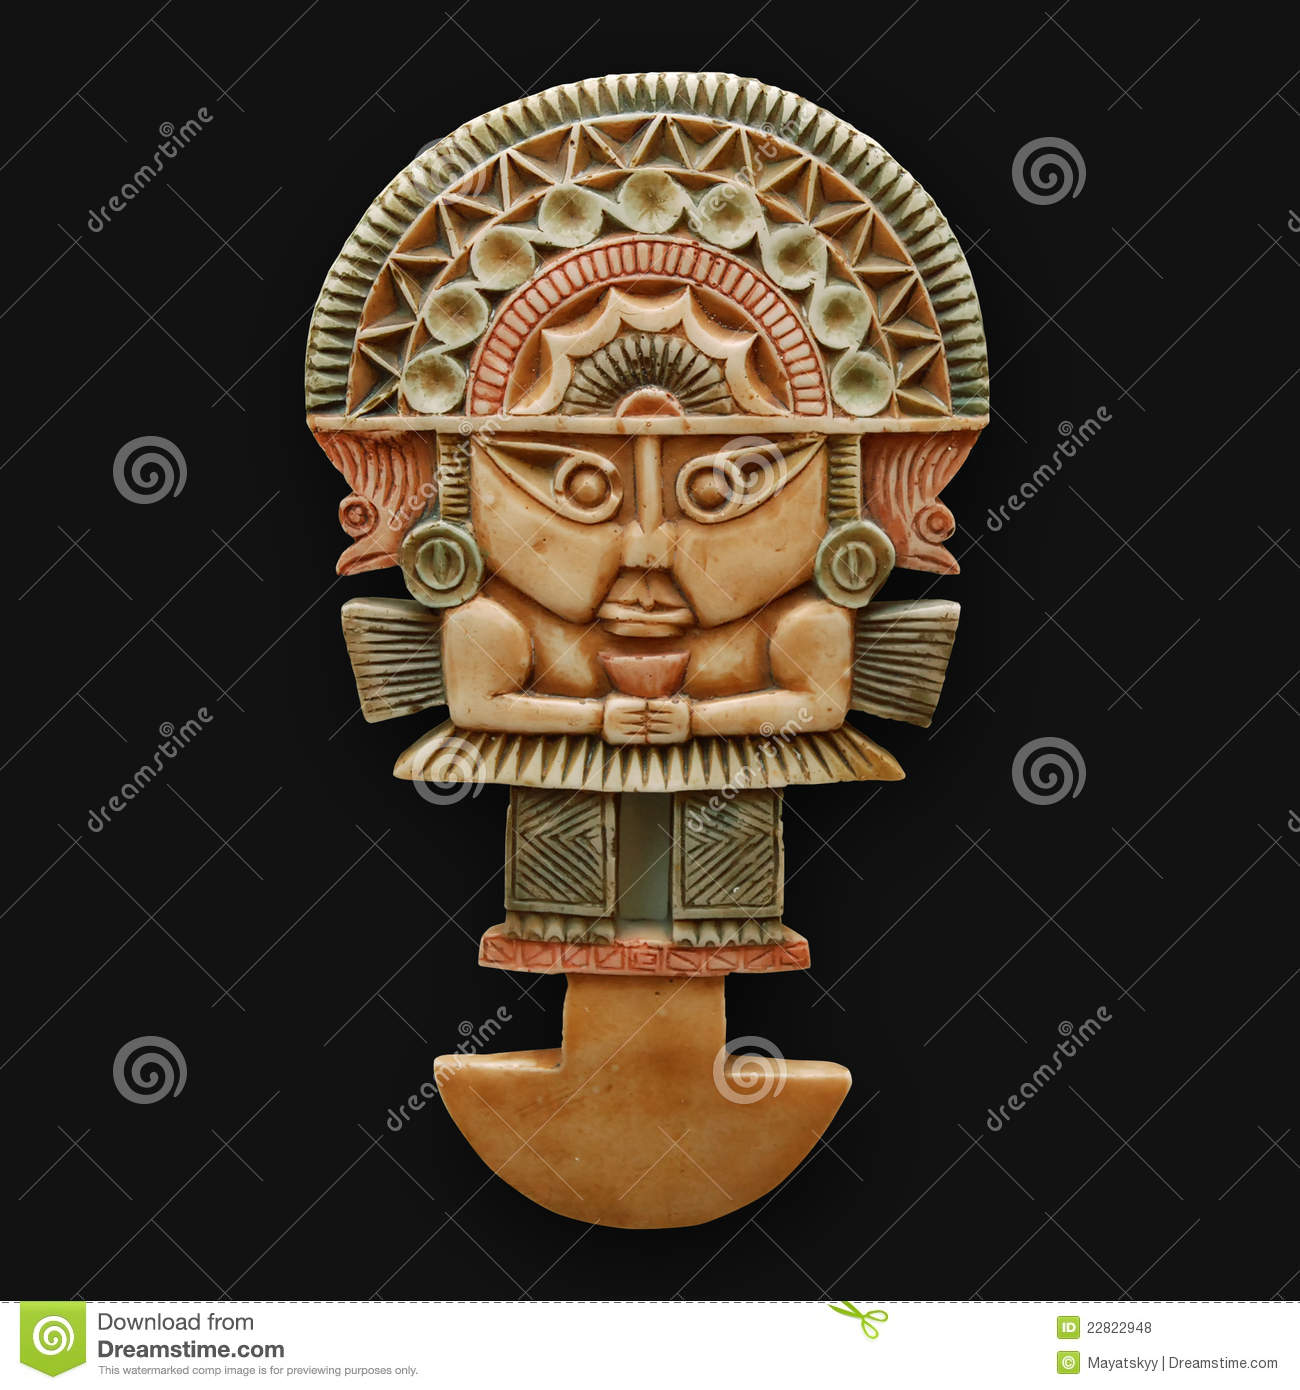 Tumi ceremonial axe inca national peruvian symbol stock photo tumi ceremonial axe inca national peruvian symbol biocorpaavc Image collections